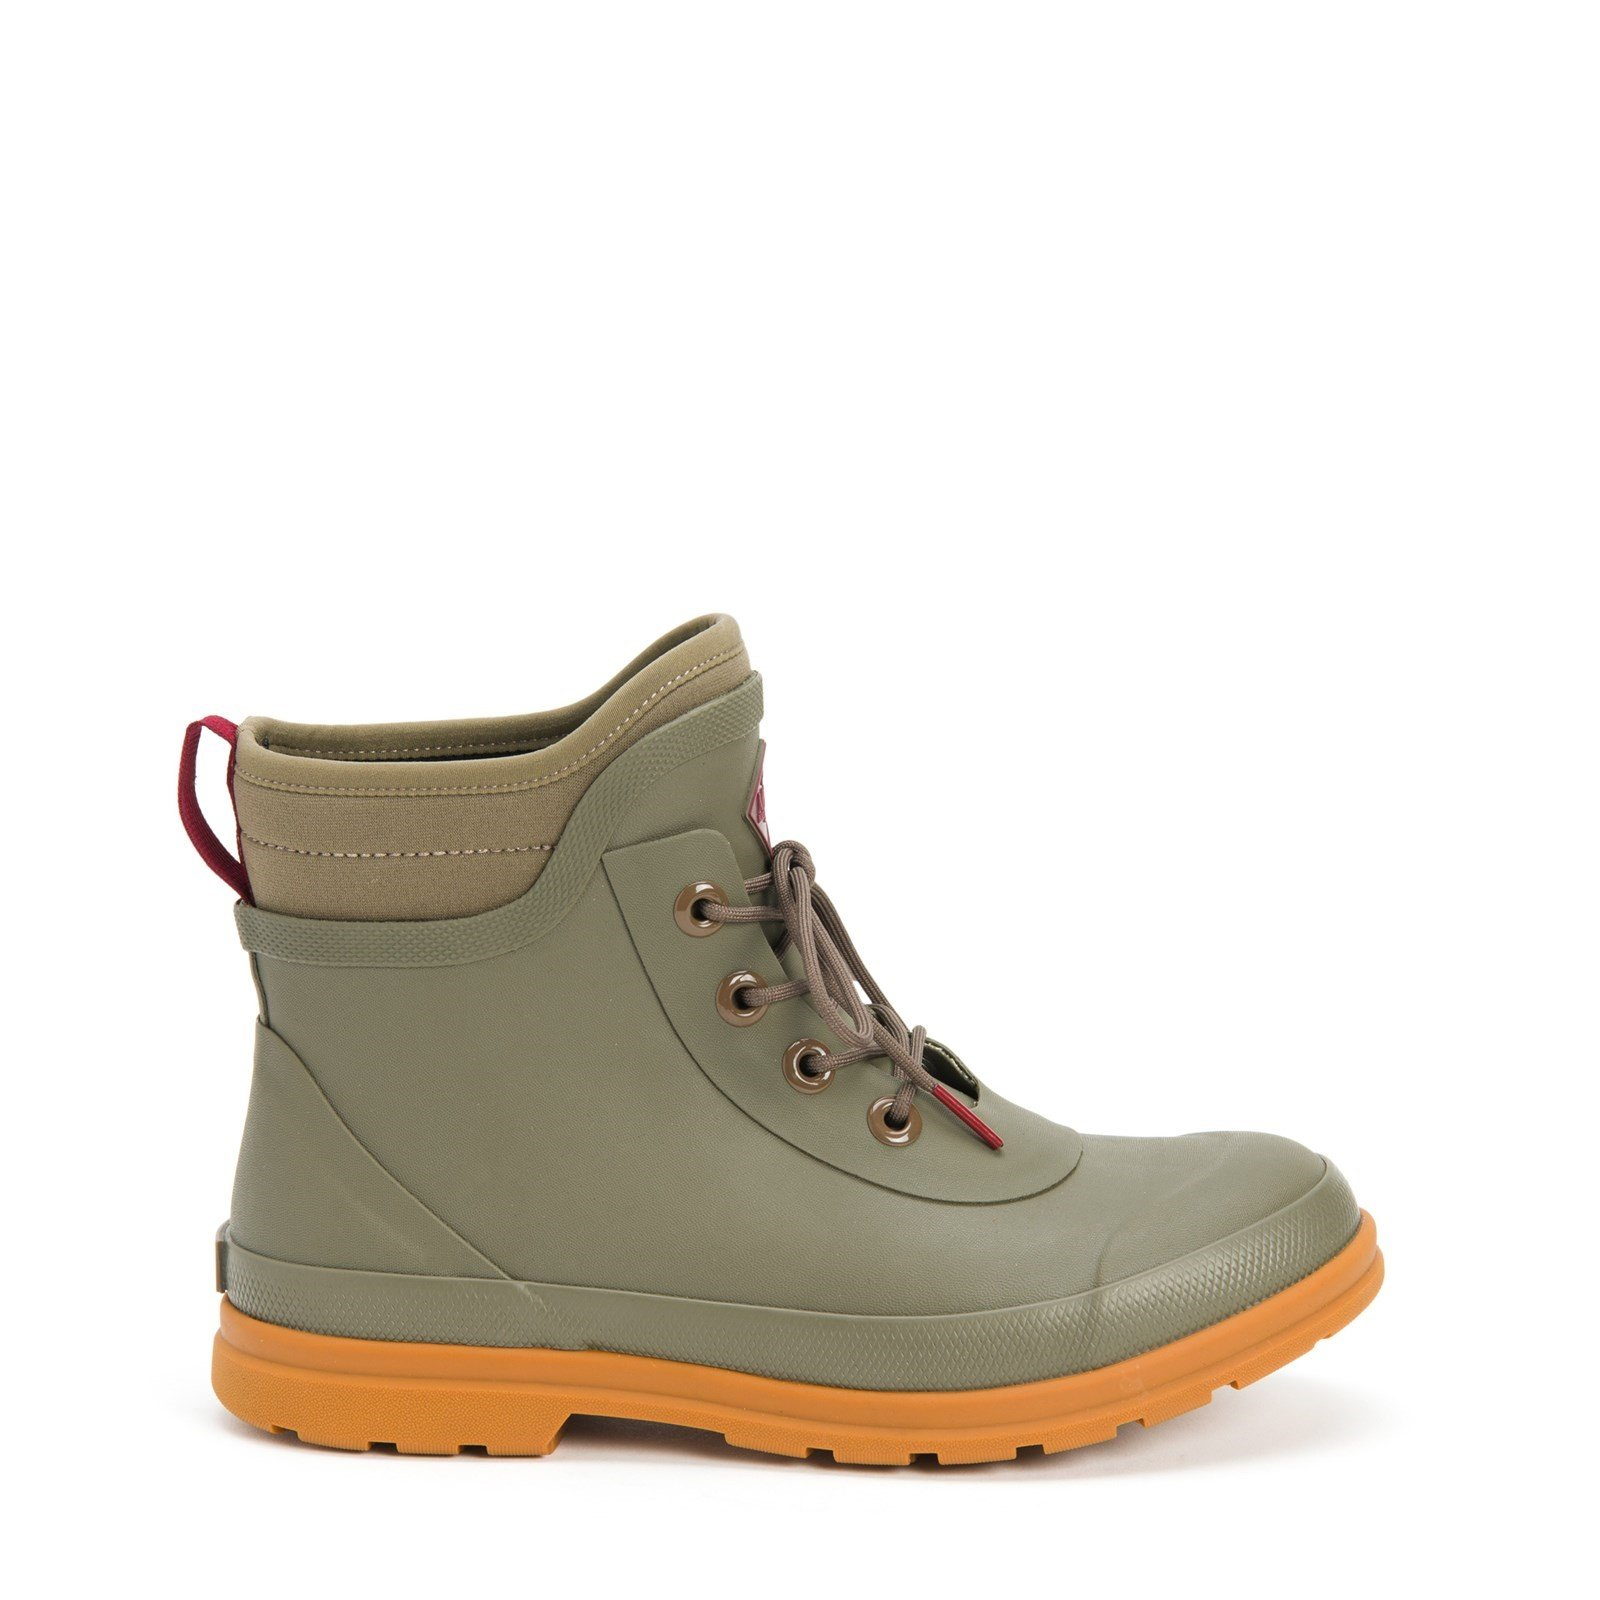 Muck Boots Women's Originals Lace Up Ankle Boot Various Colours 30079 - Taupe 5